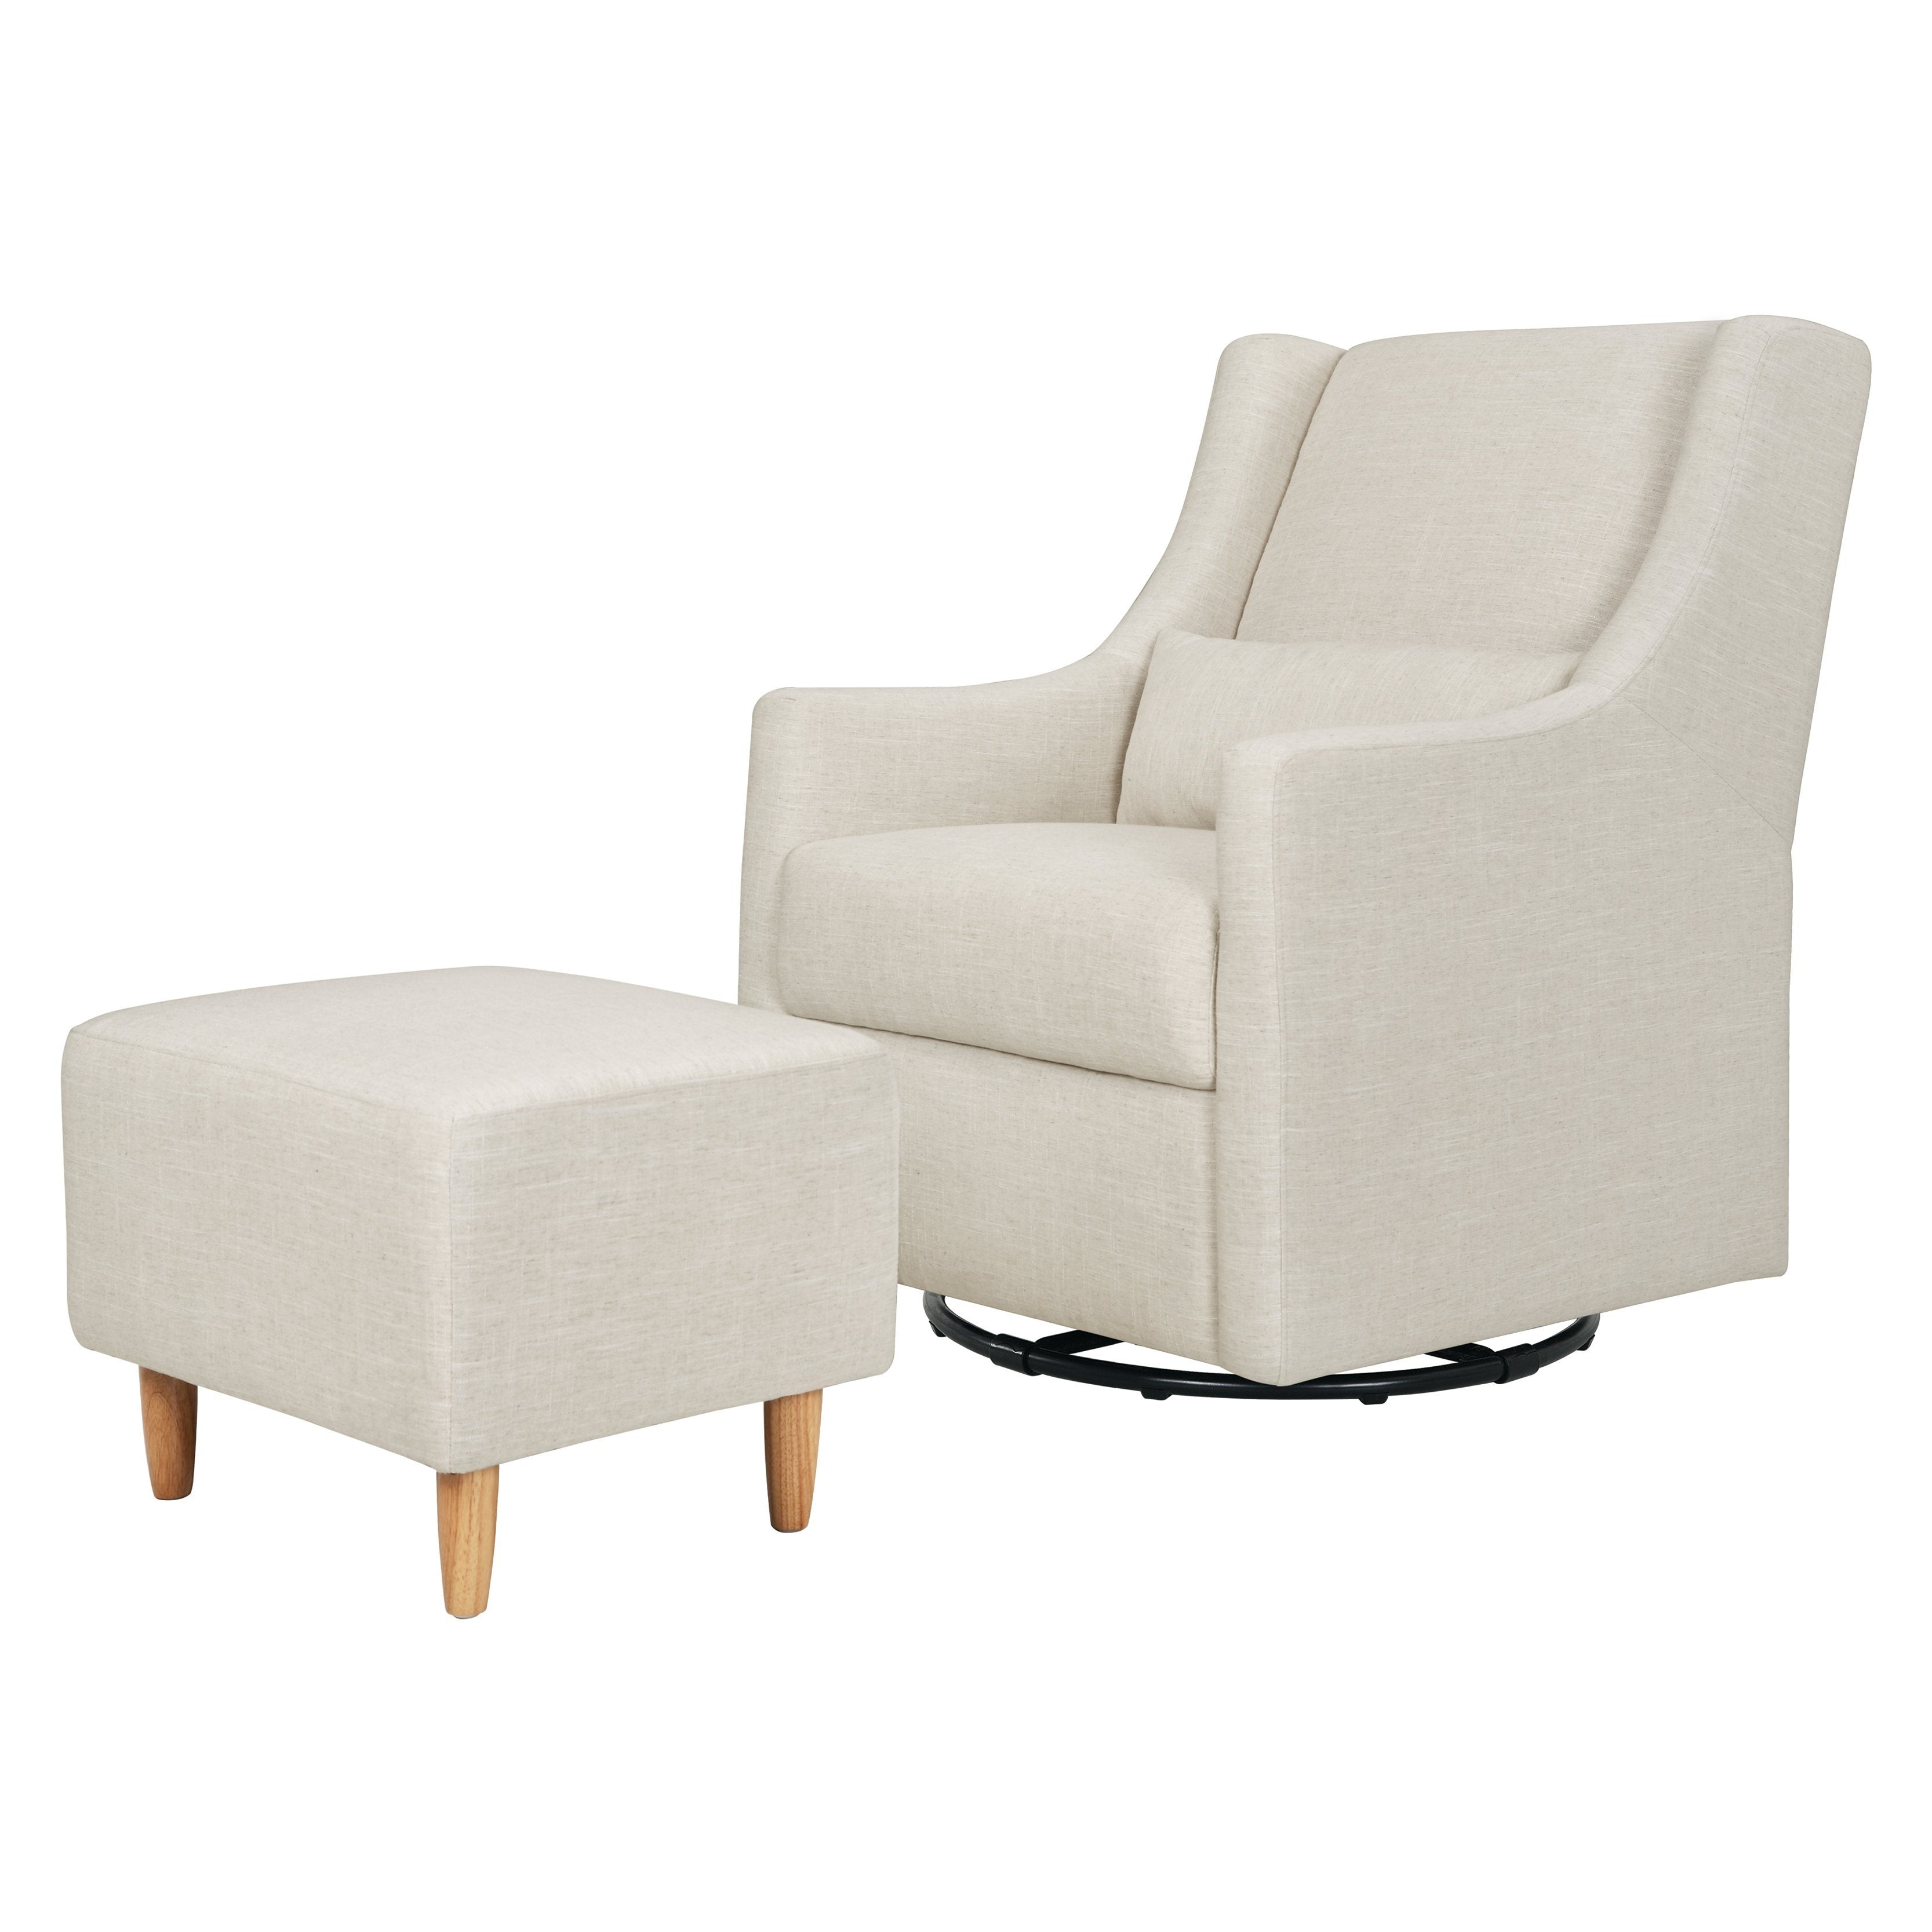 Toco Swivel Glider and Stationary Ottoman - Project Nursery